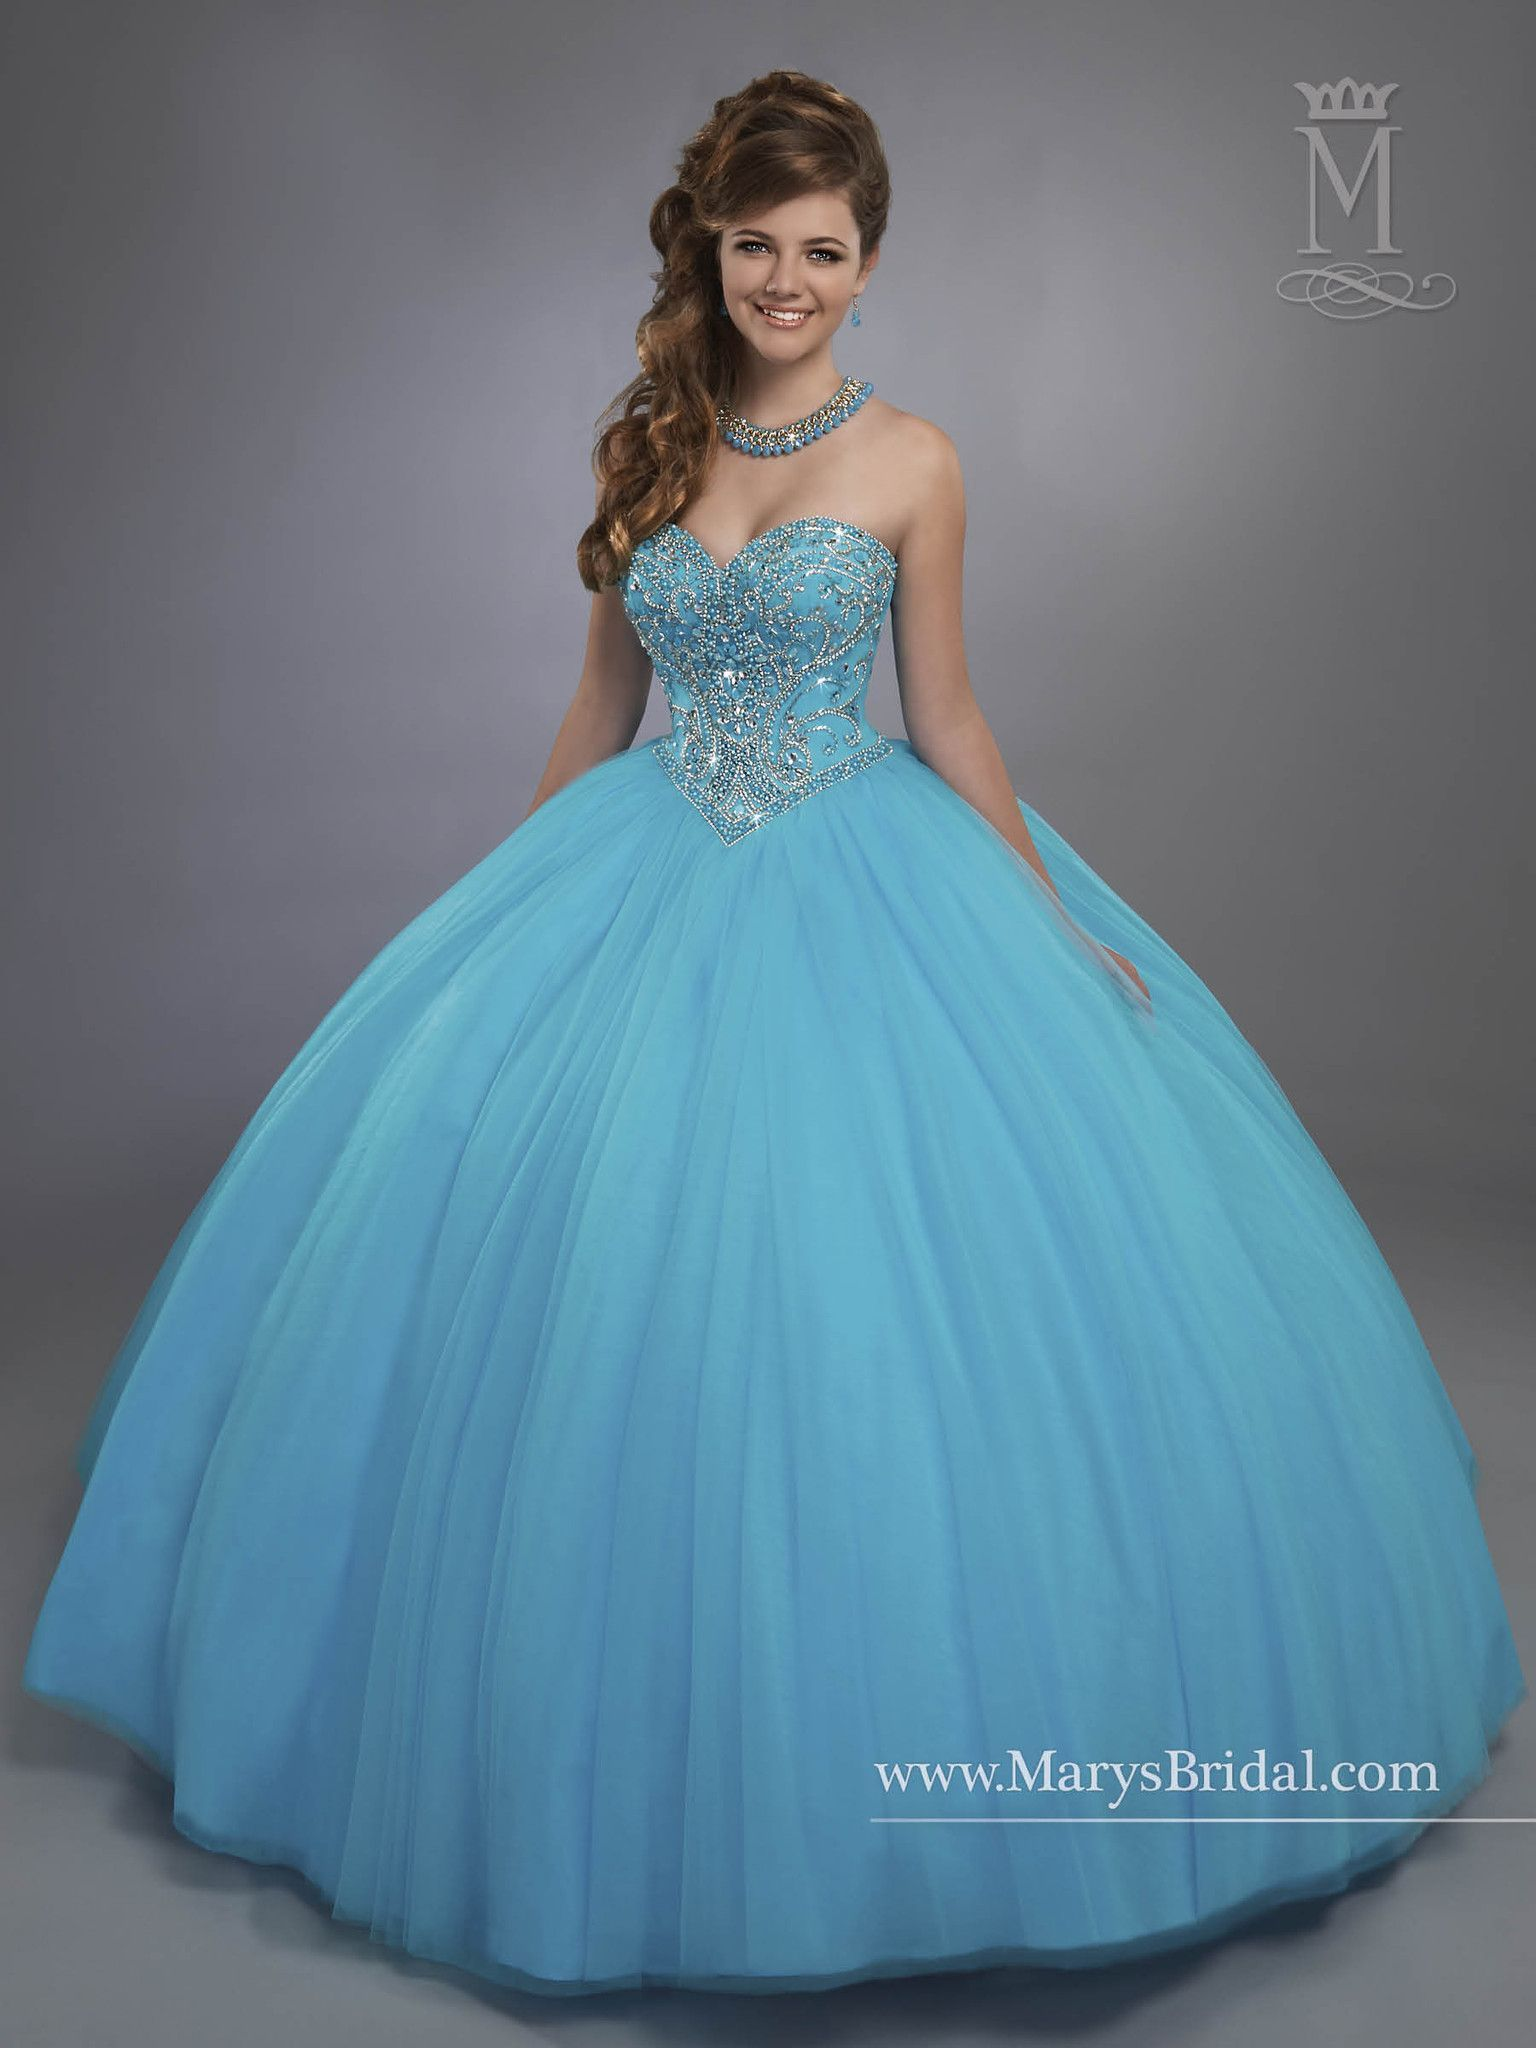 Mary\'s Bridal Beloving Collection Quinceanera Dress Style 4761 ...